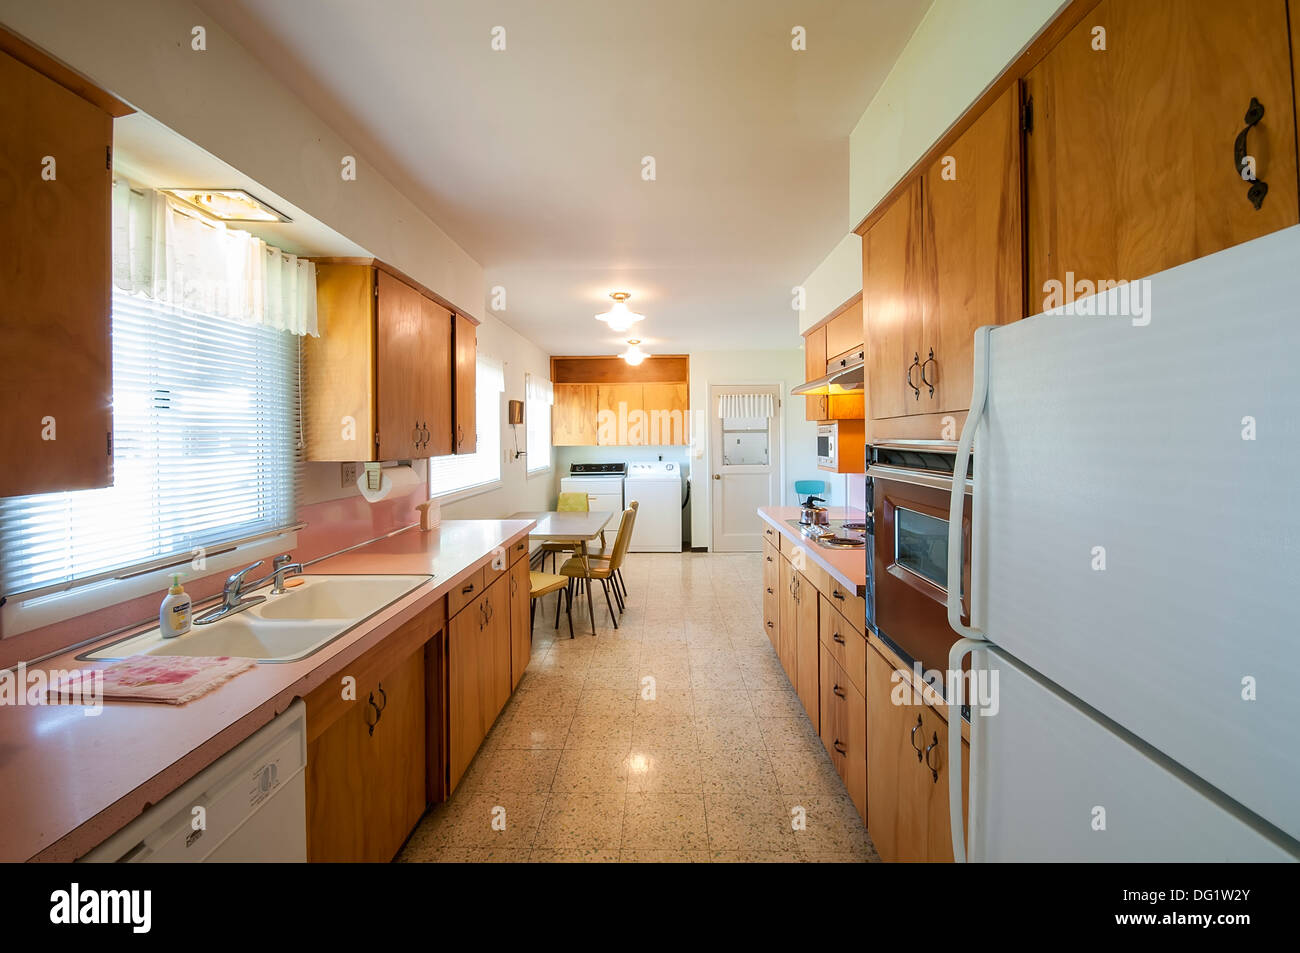 Kitchen in house built around 1959, with very little remodeling.  Very retro.  Cozy and warm. - Stock Image